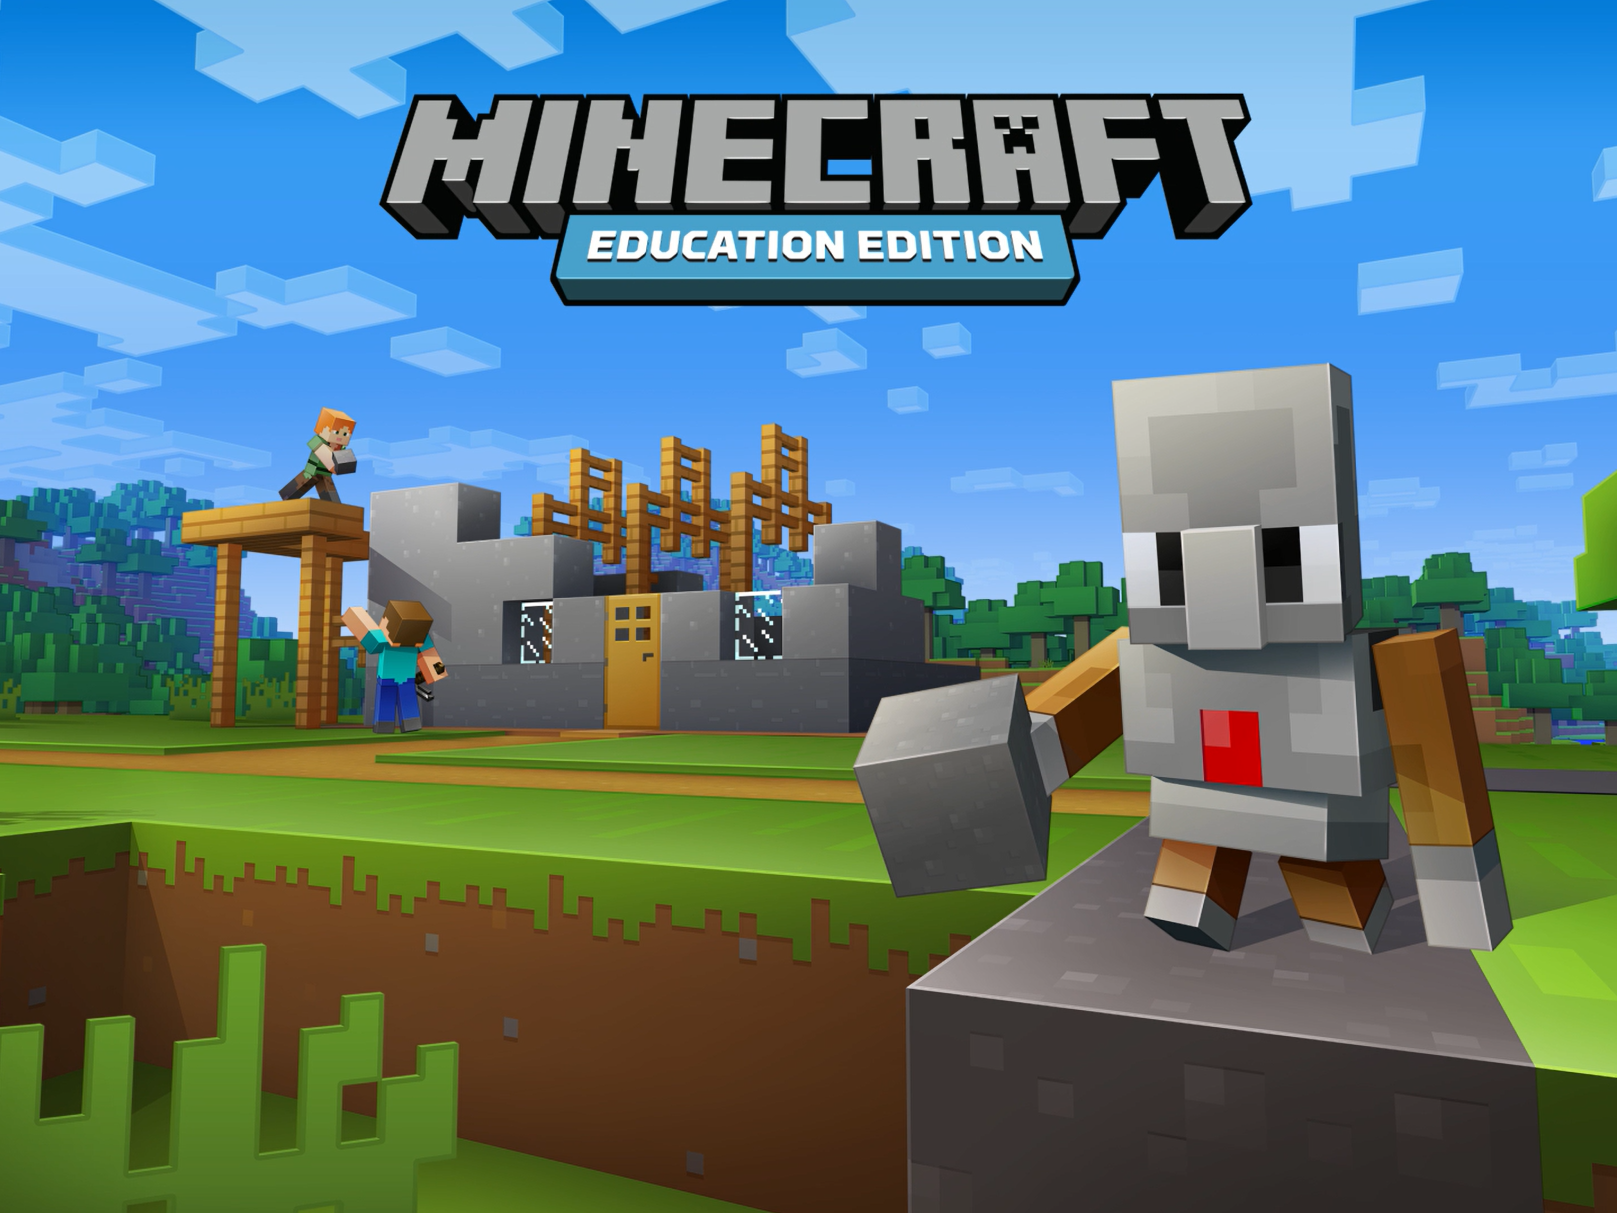 Coronavirus Free Educational Minecraft Games Announced For Children Amid School Closures The Independent The Independent